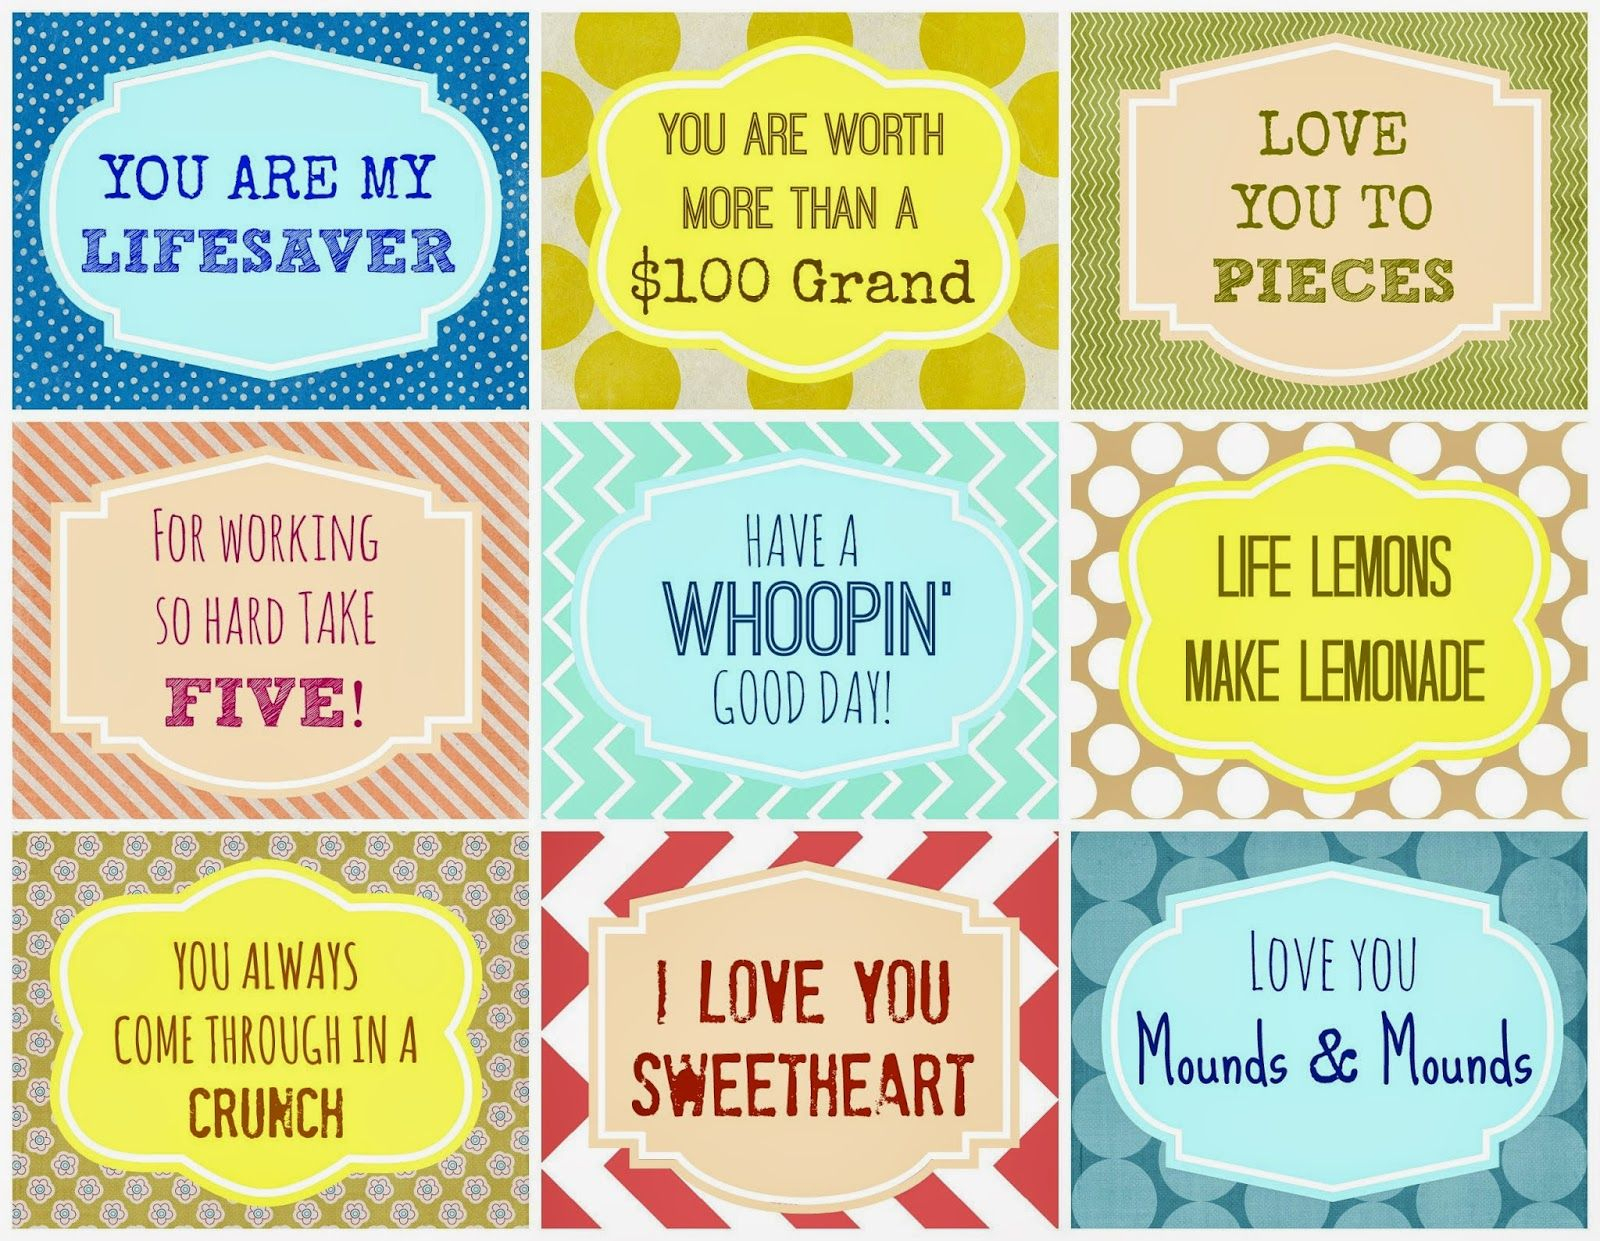 Candy Grams {Free Printable} | Spp | Pinterest | Candy Grams, Candy - Free Printable Lifesaver Tags